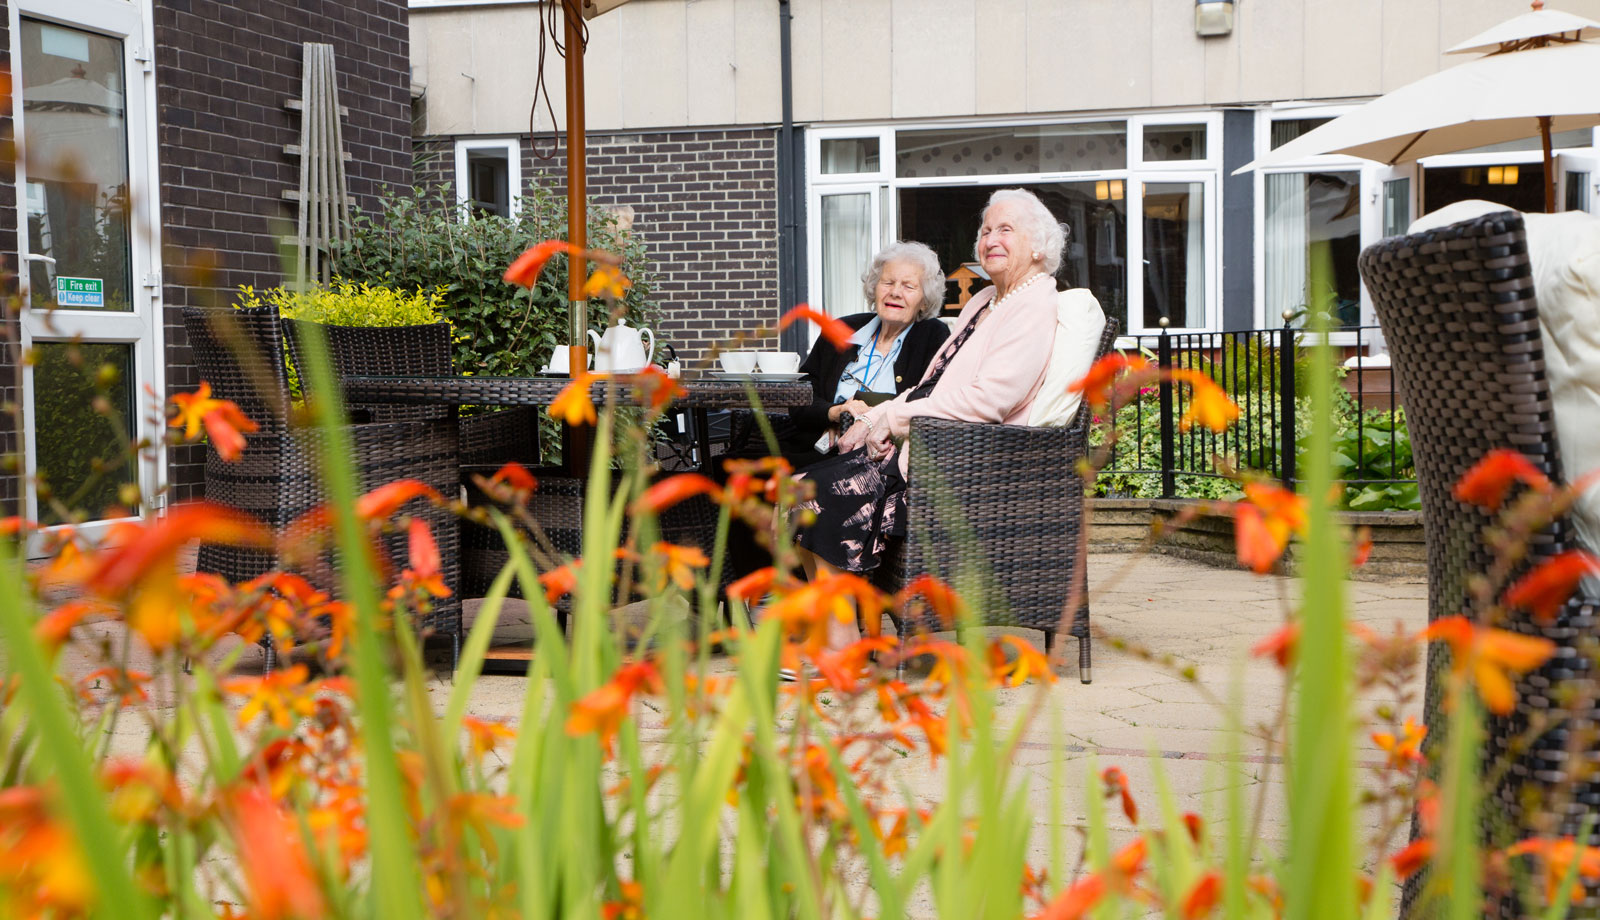 care home harrogate yorkshire